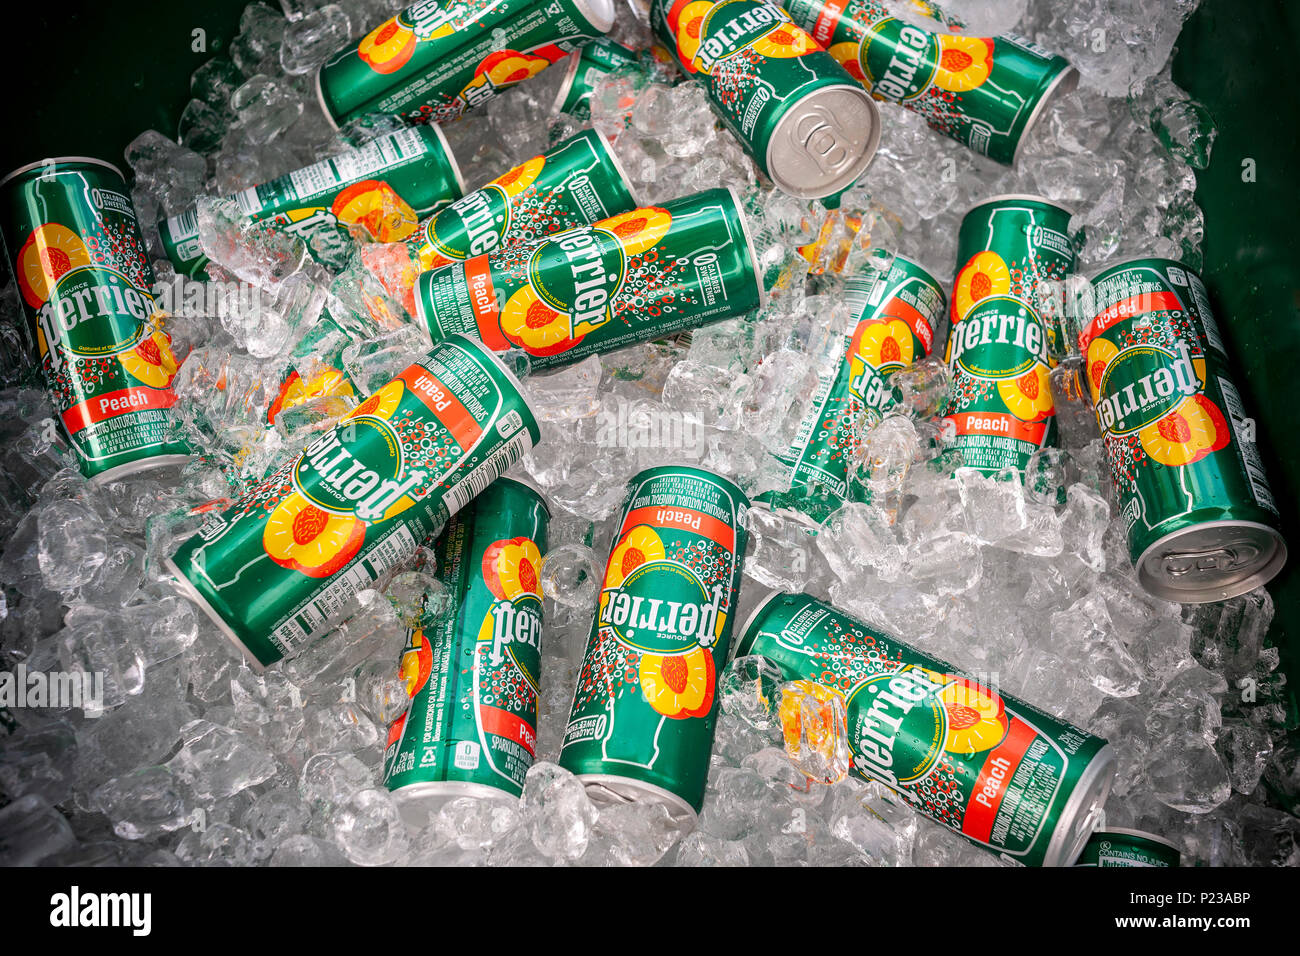 Cans of Perrier juice flavored carbonated water, seen at a street fair in New York on Saturday, June 2, 2018. The new product from Nestlé Waters, Perrier's parent company, addresses the increased popularity of flavored carbonated waters spear-headed by the millennial favorite La Croix. (© Richard B. Levine) - Stock Image